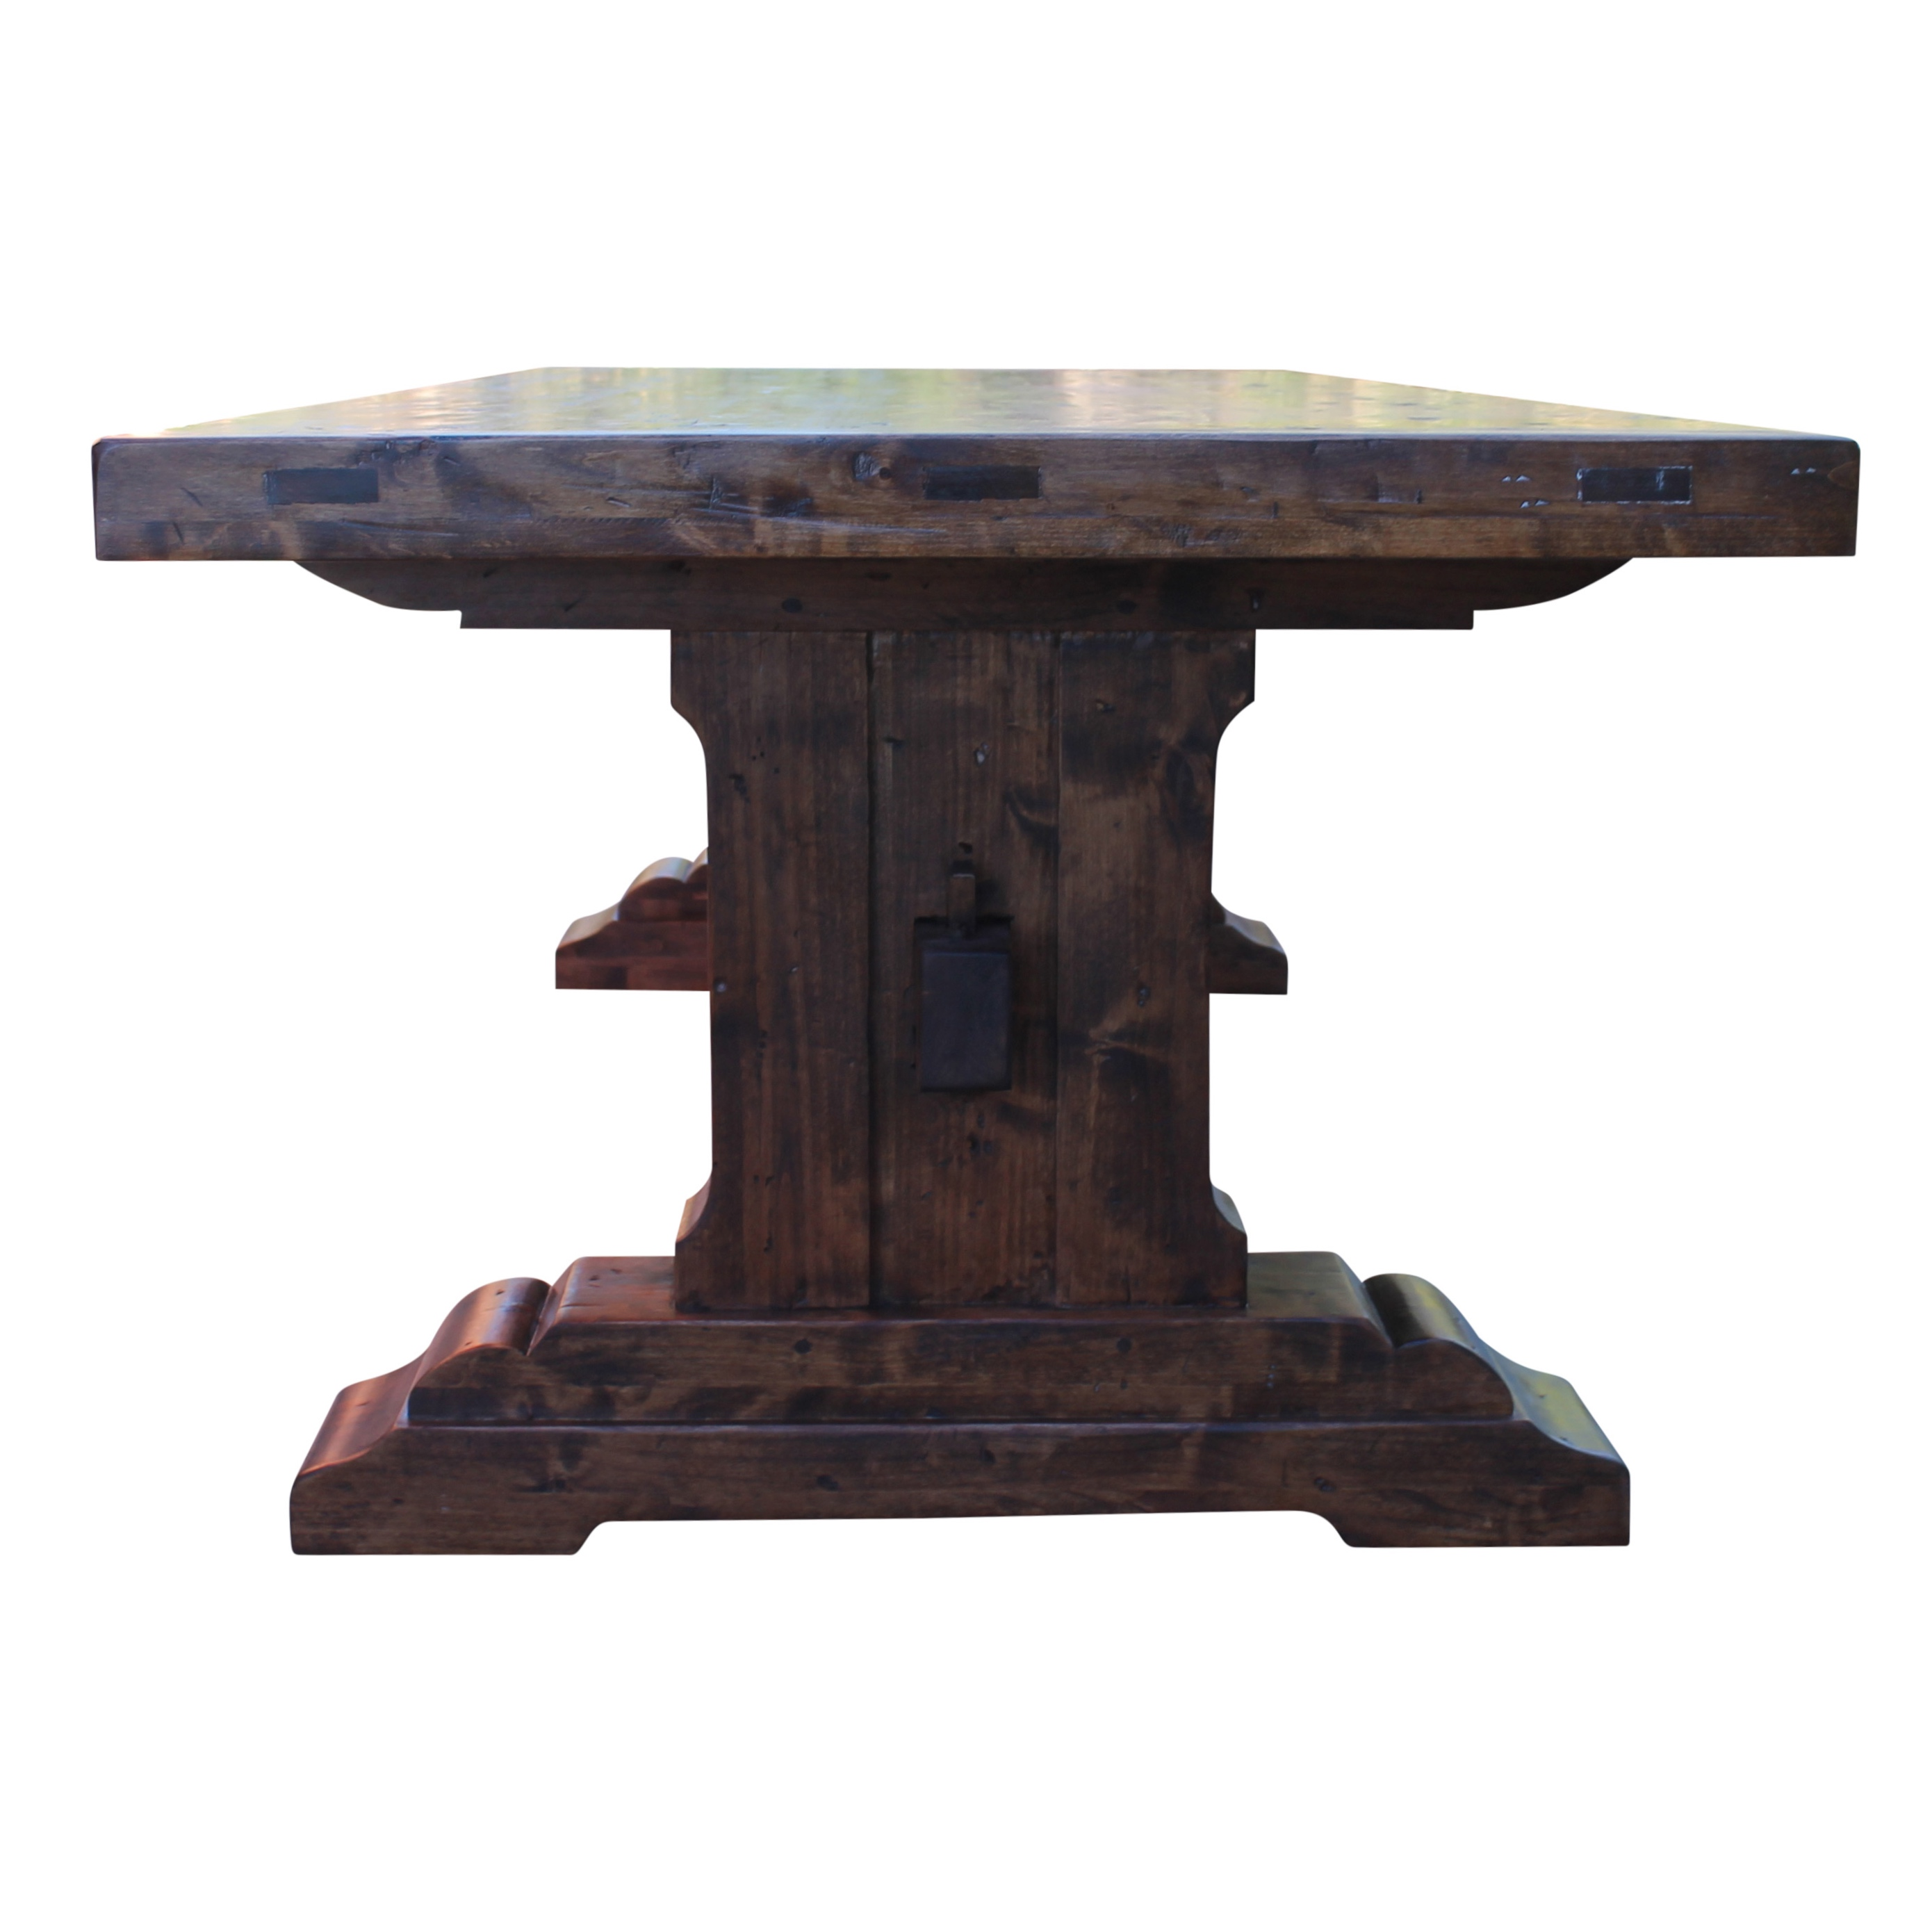 Alder Trestle Base Table Water Street Antiques : IMG9256 1 from www.waterstreetantiques.com size 2780 x 2780 jpeg 579kB